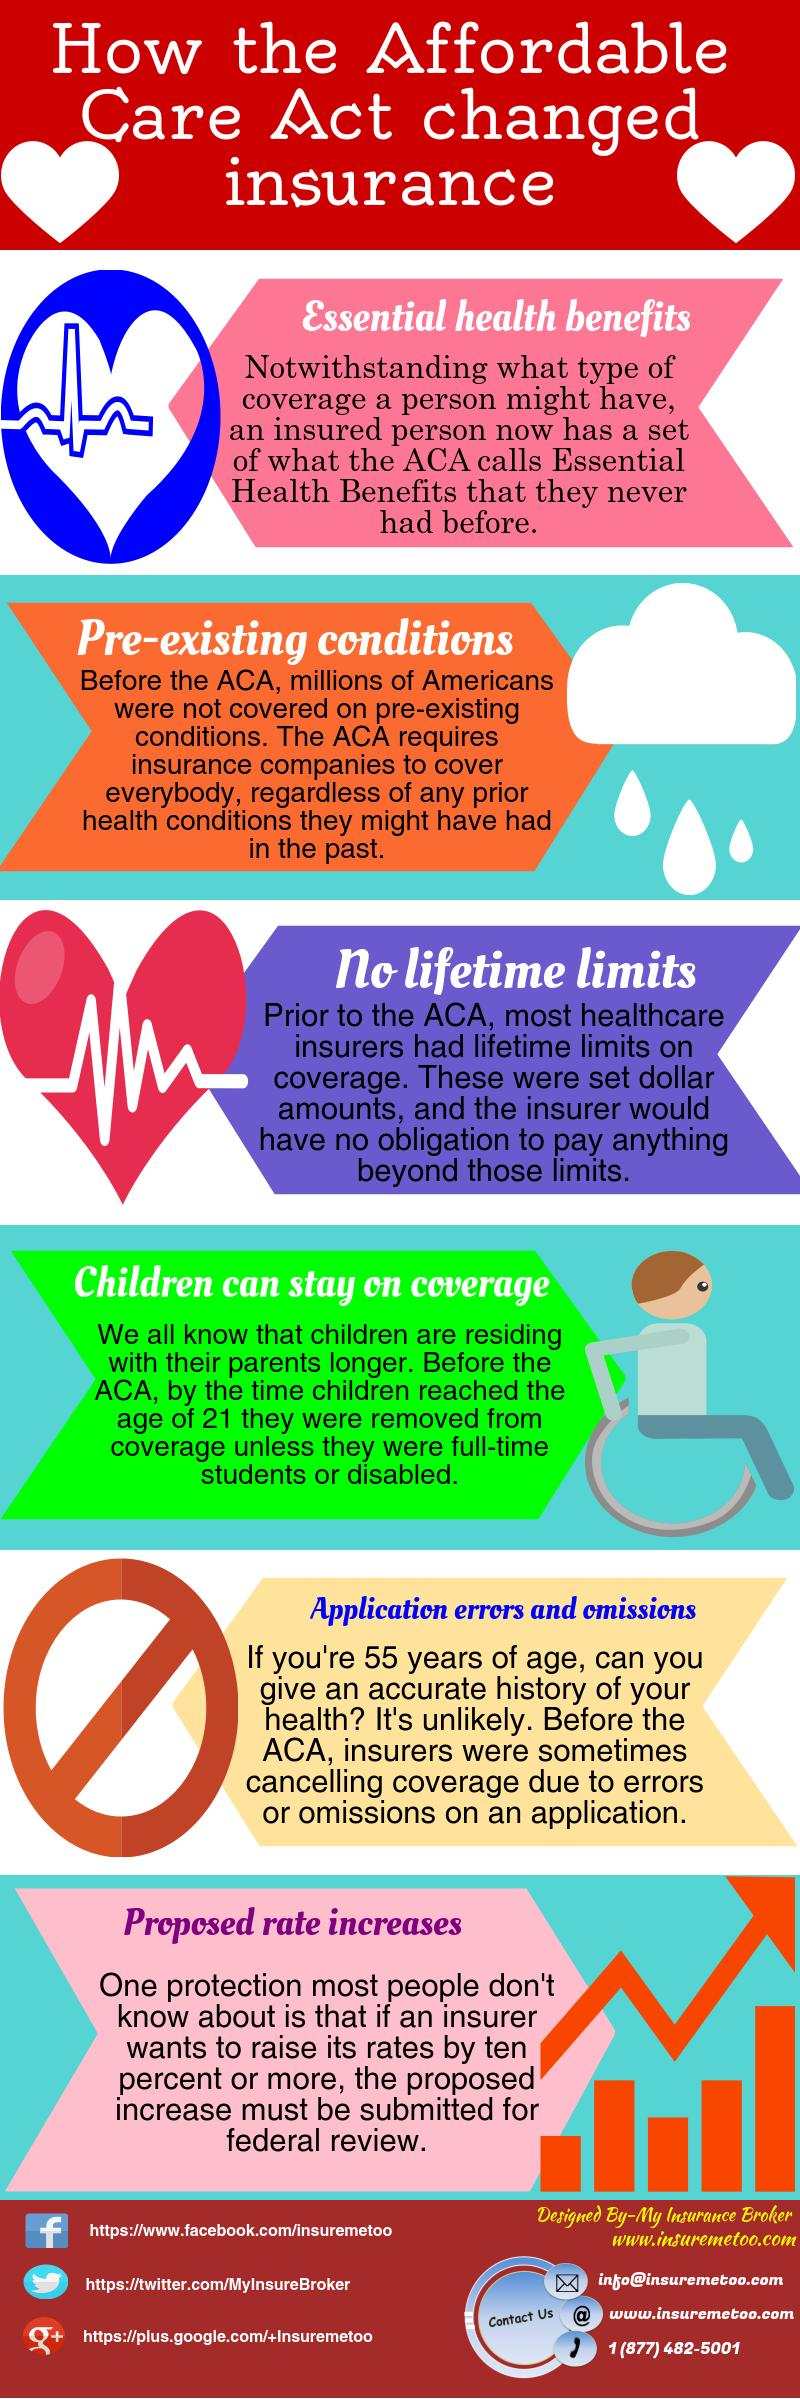 how to get affordable health insurance with pre existing conditions